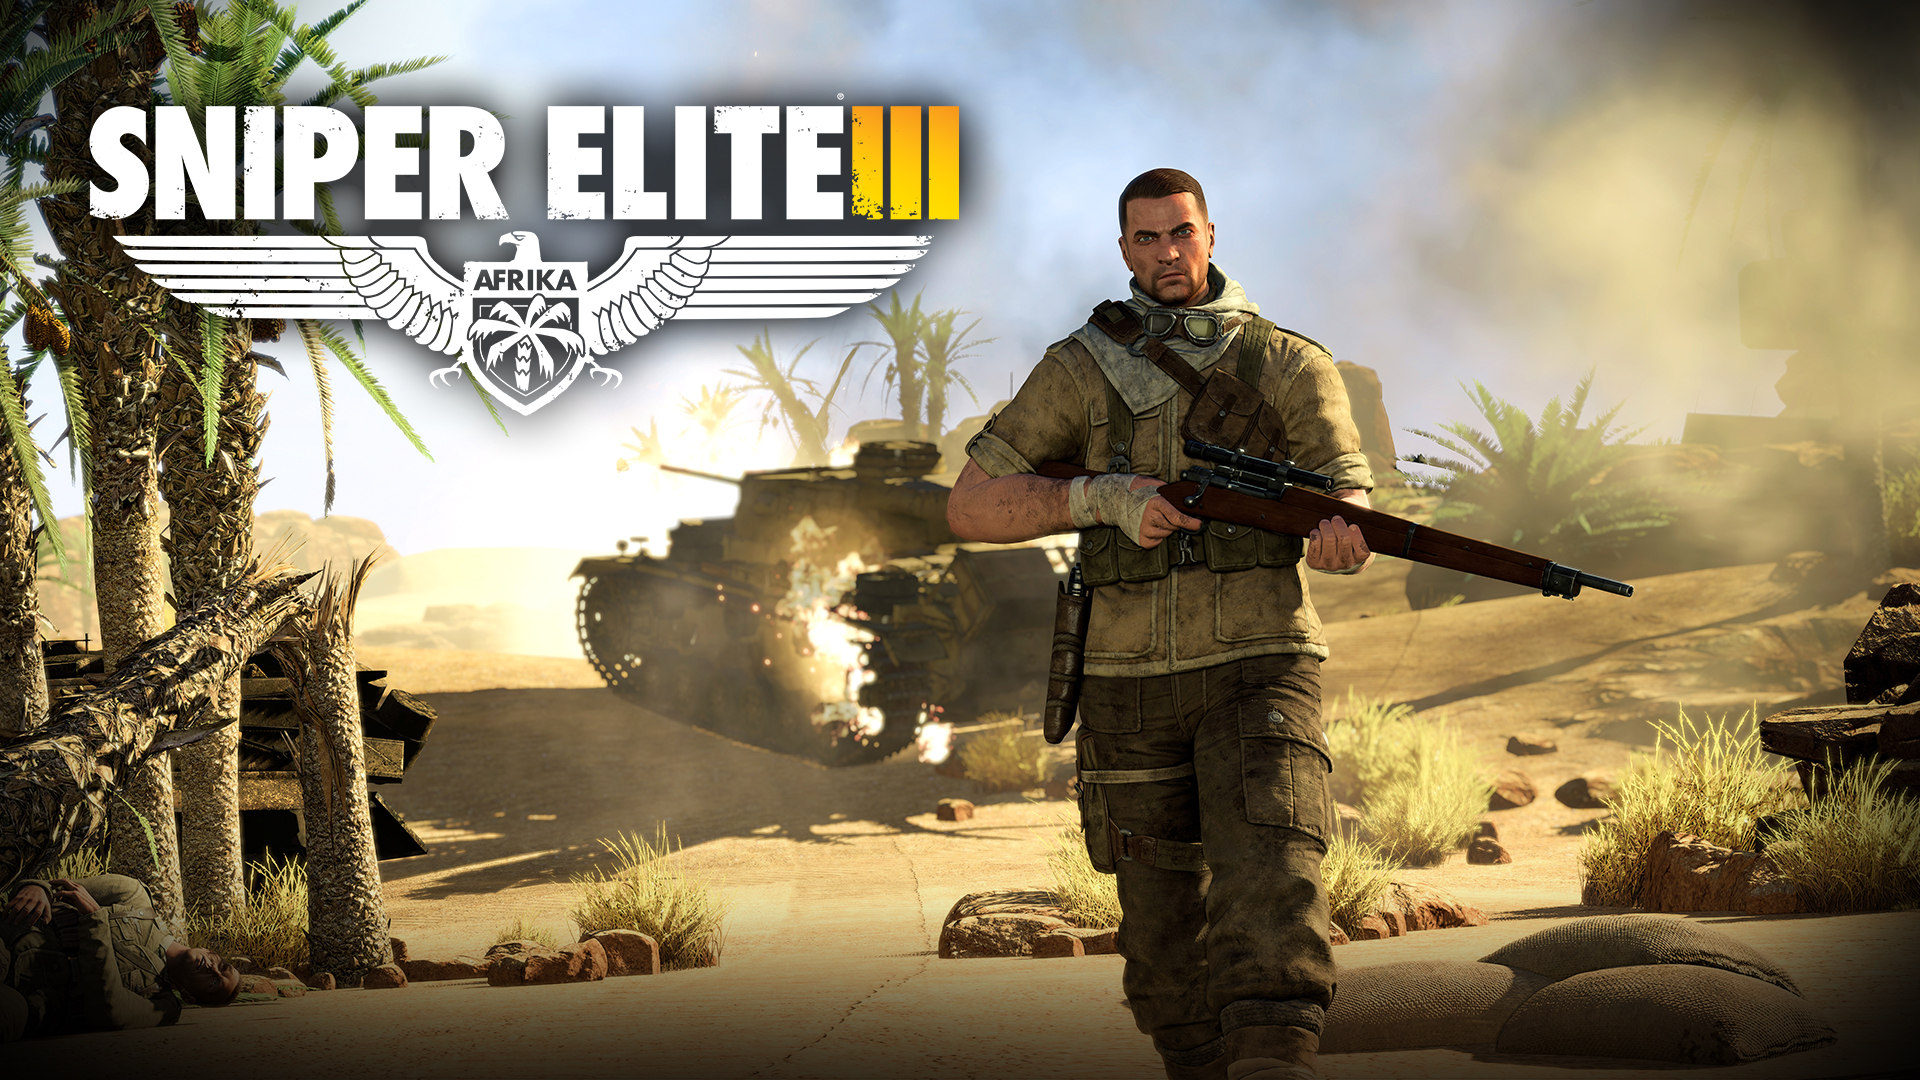 Sniper Elite 3 Wallpaper 2713 1920 x 1080   WallpaperLayercom 1920x1080